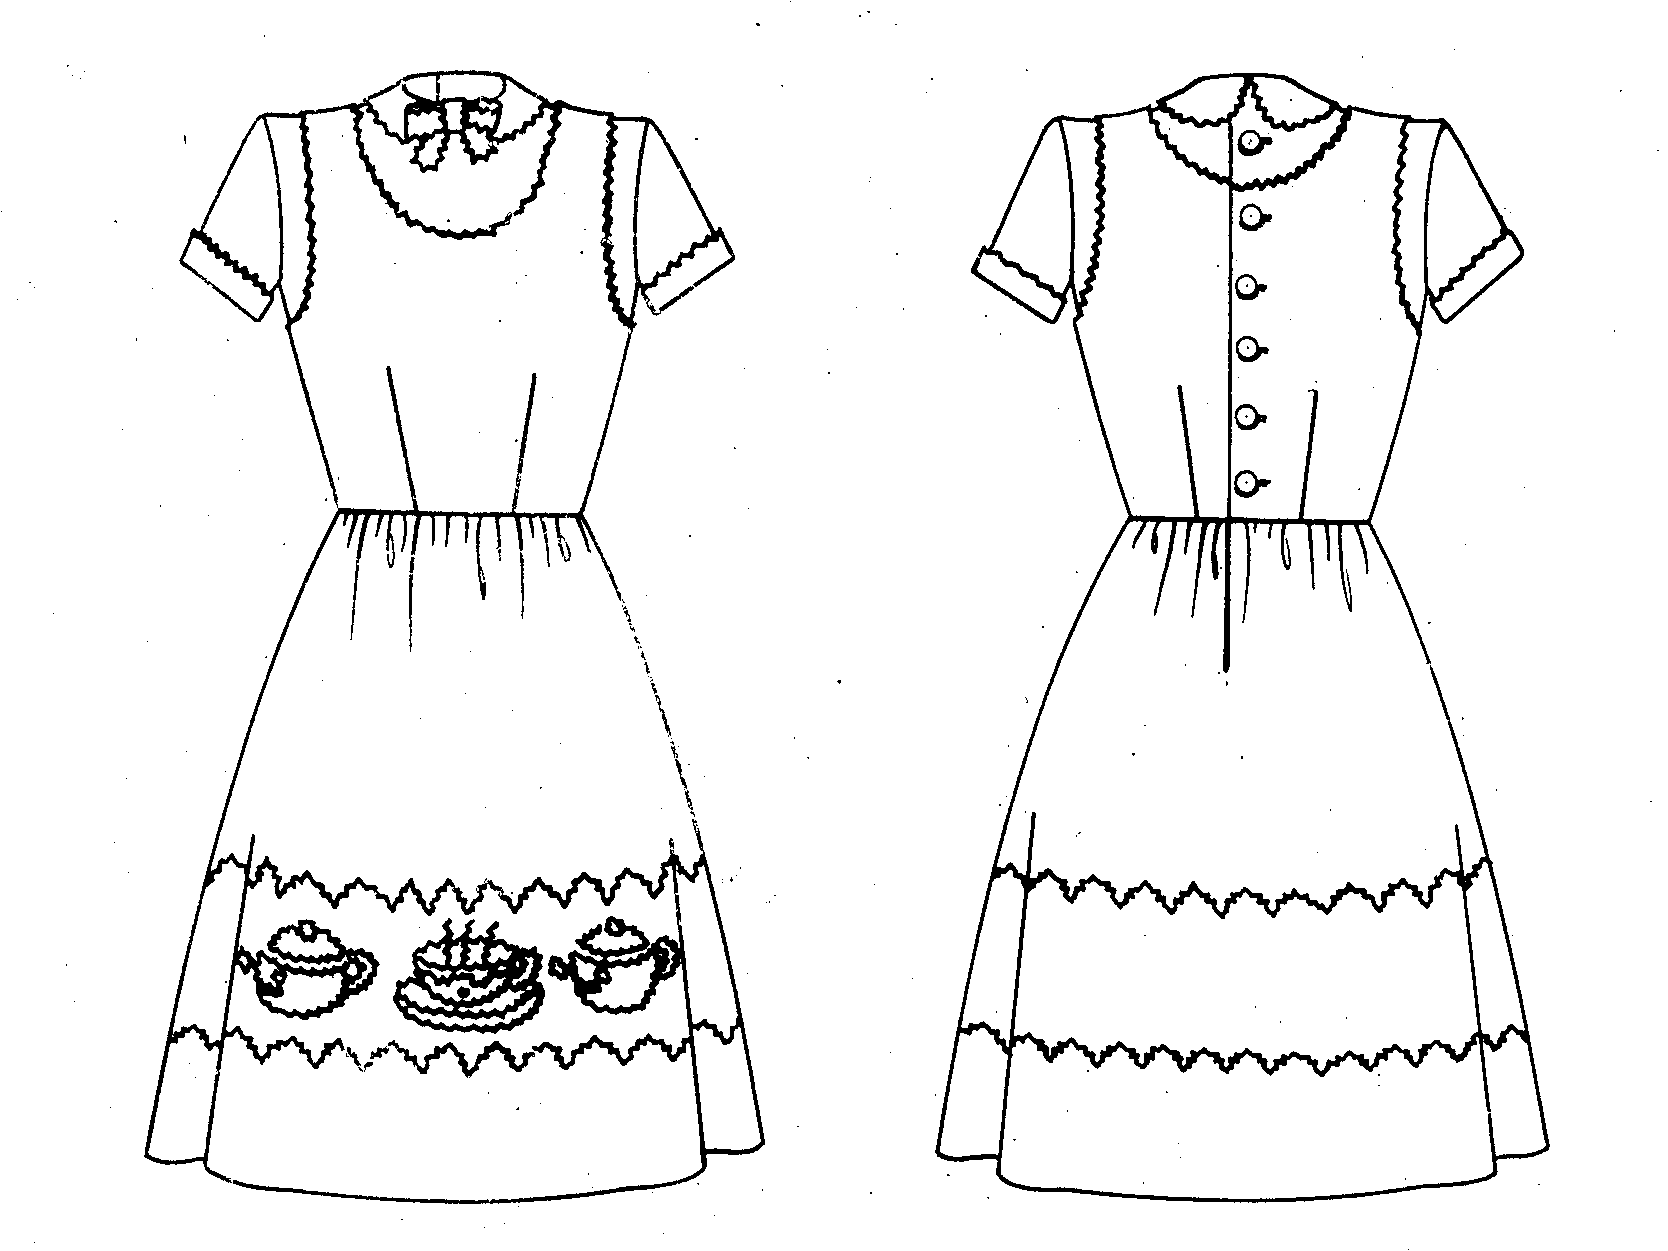 fileemily wilkens patent drawing for a dress with teapots march 28